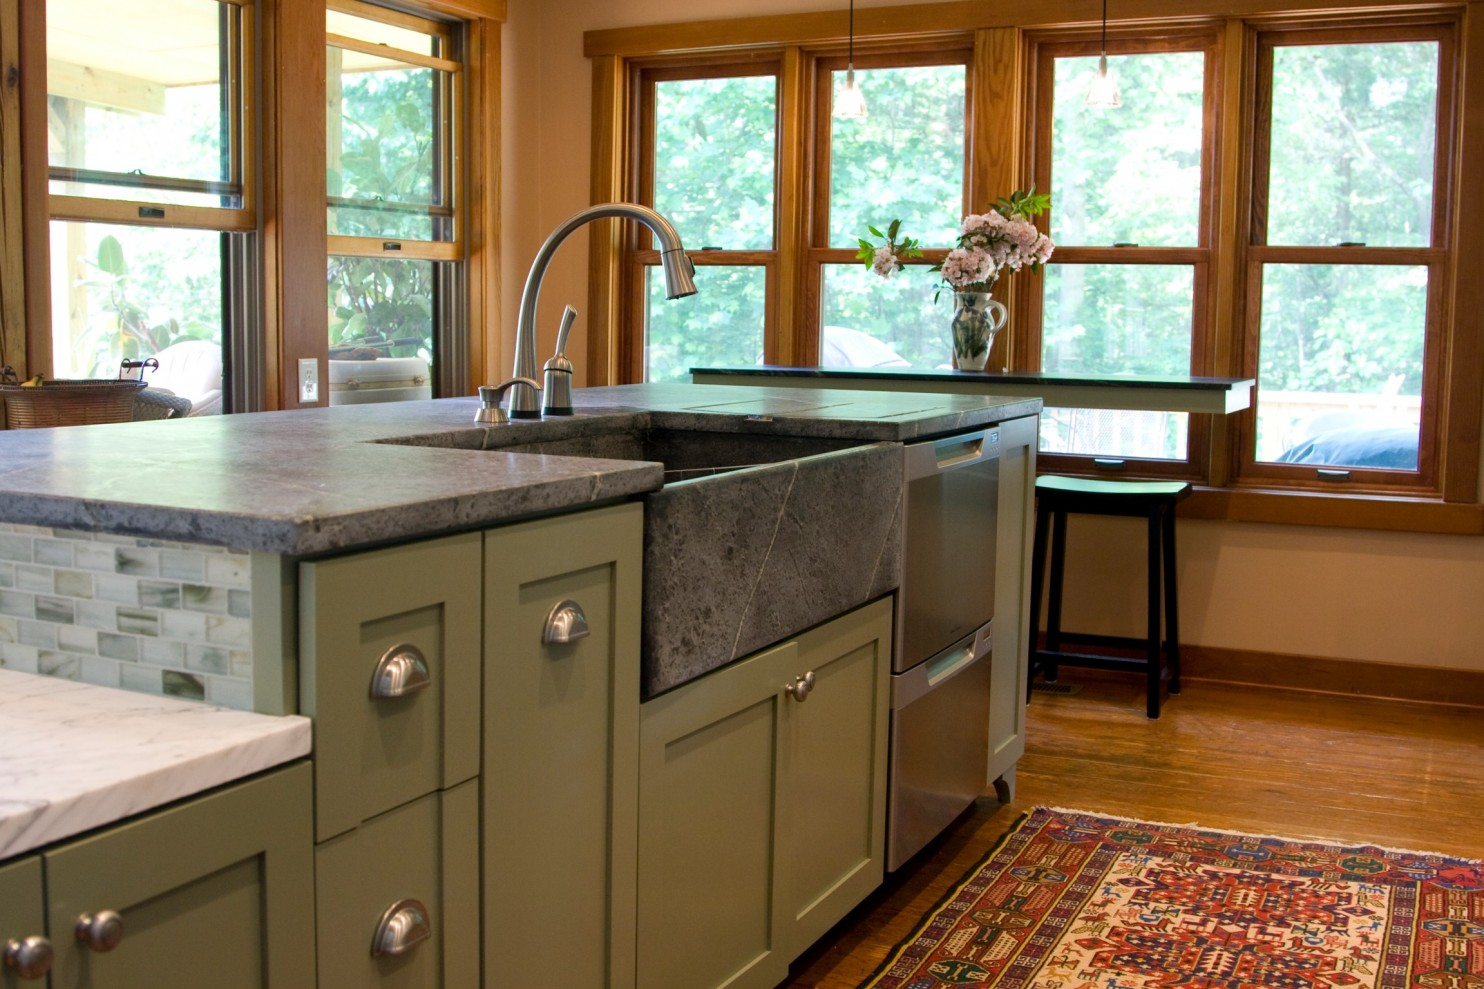 soapstone soapstone kitchen countertops View Larger Image